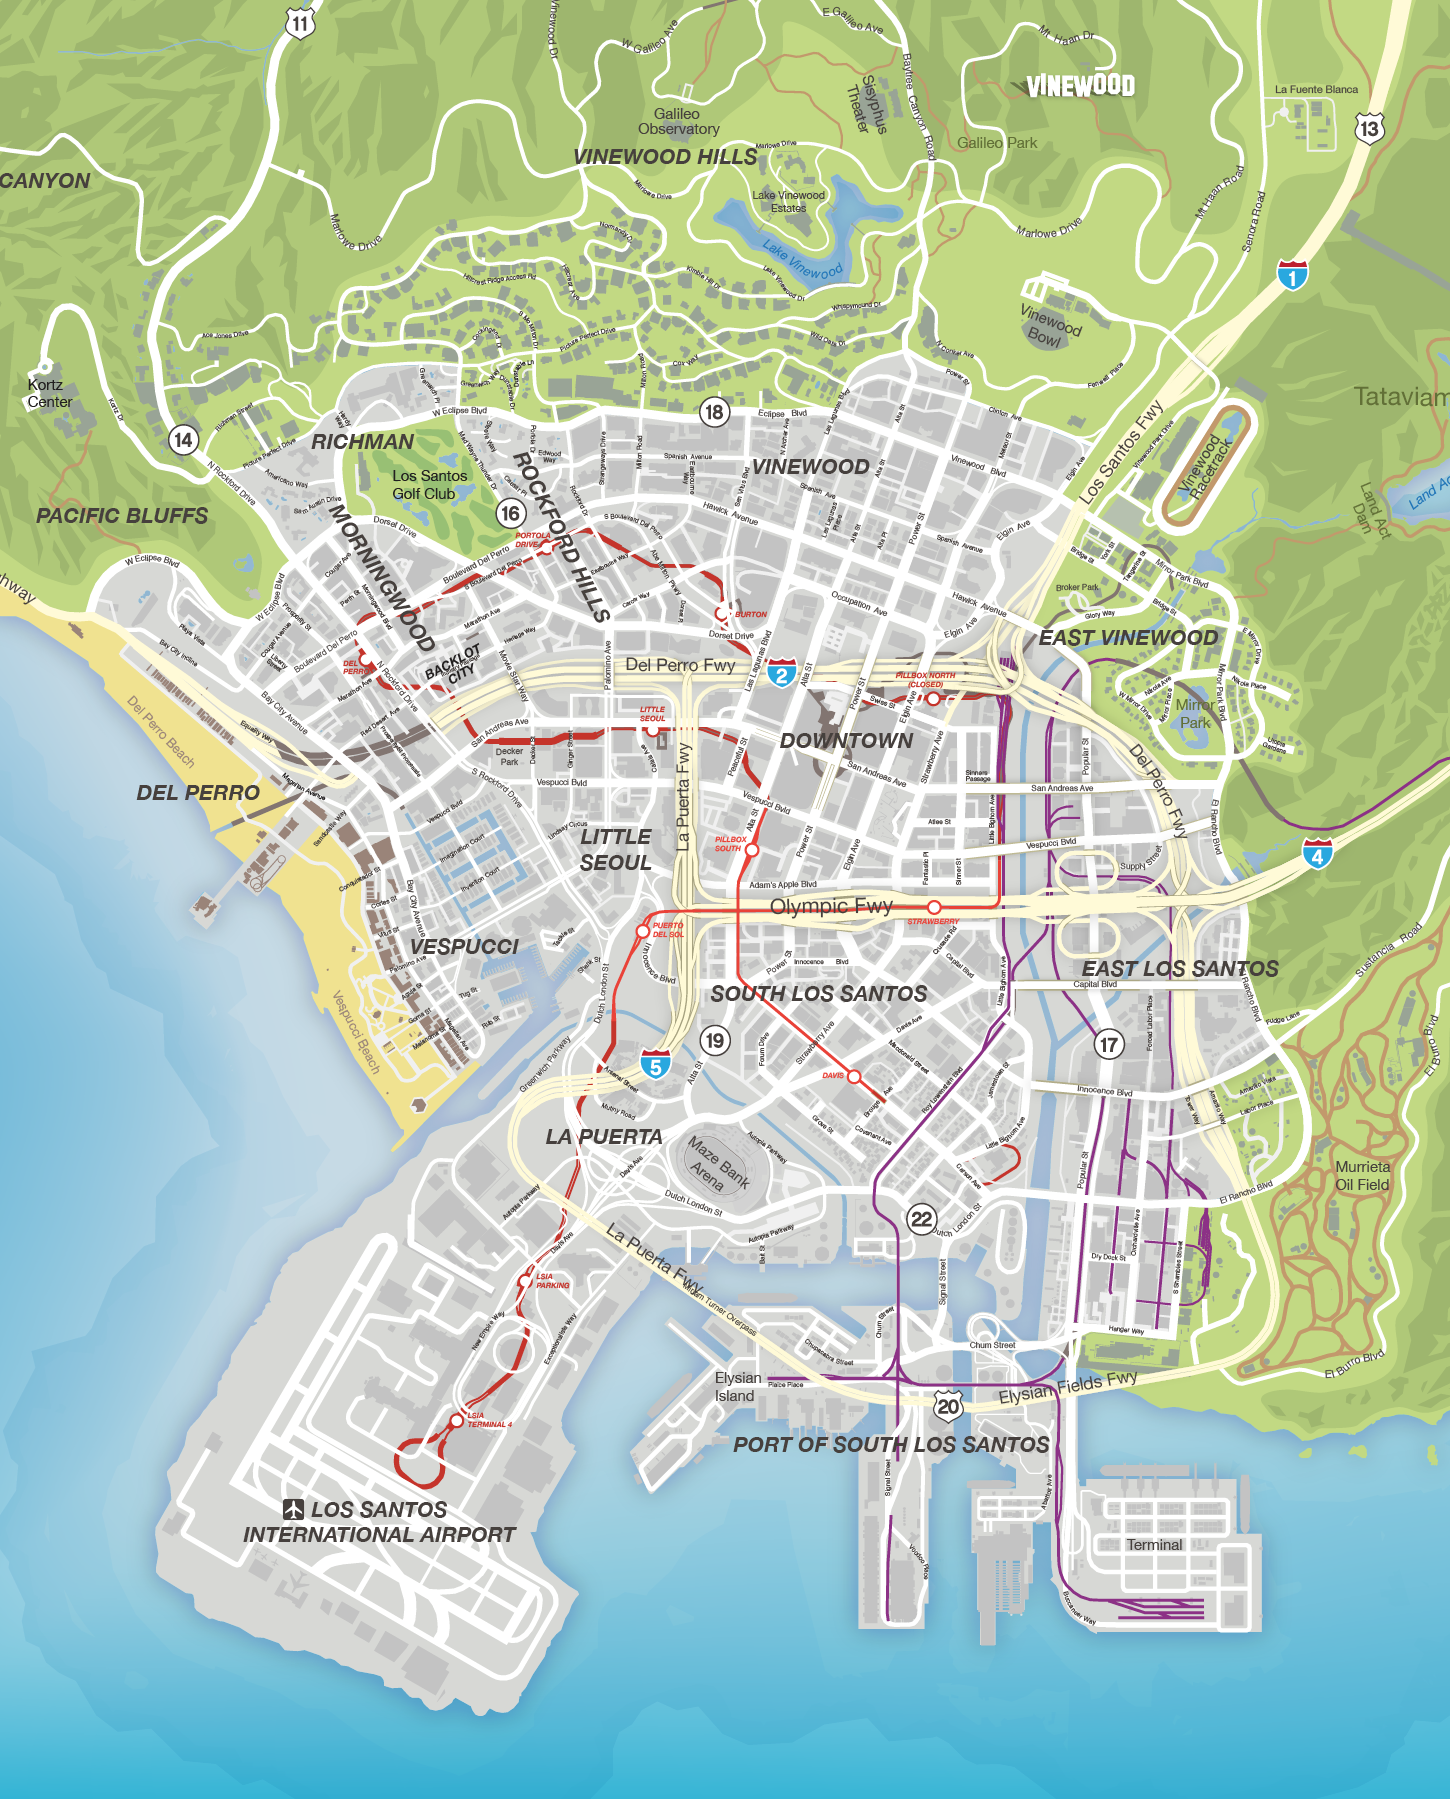 GTA V Maps QuadUltra High Definition 8K Quality